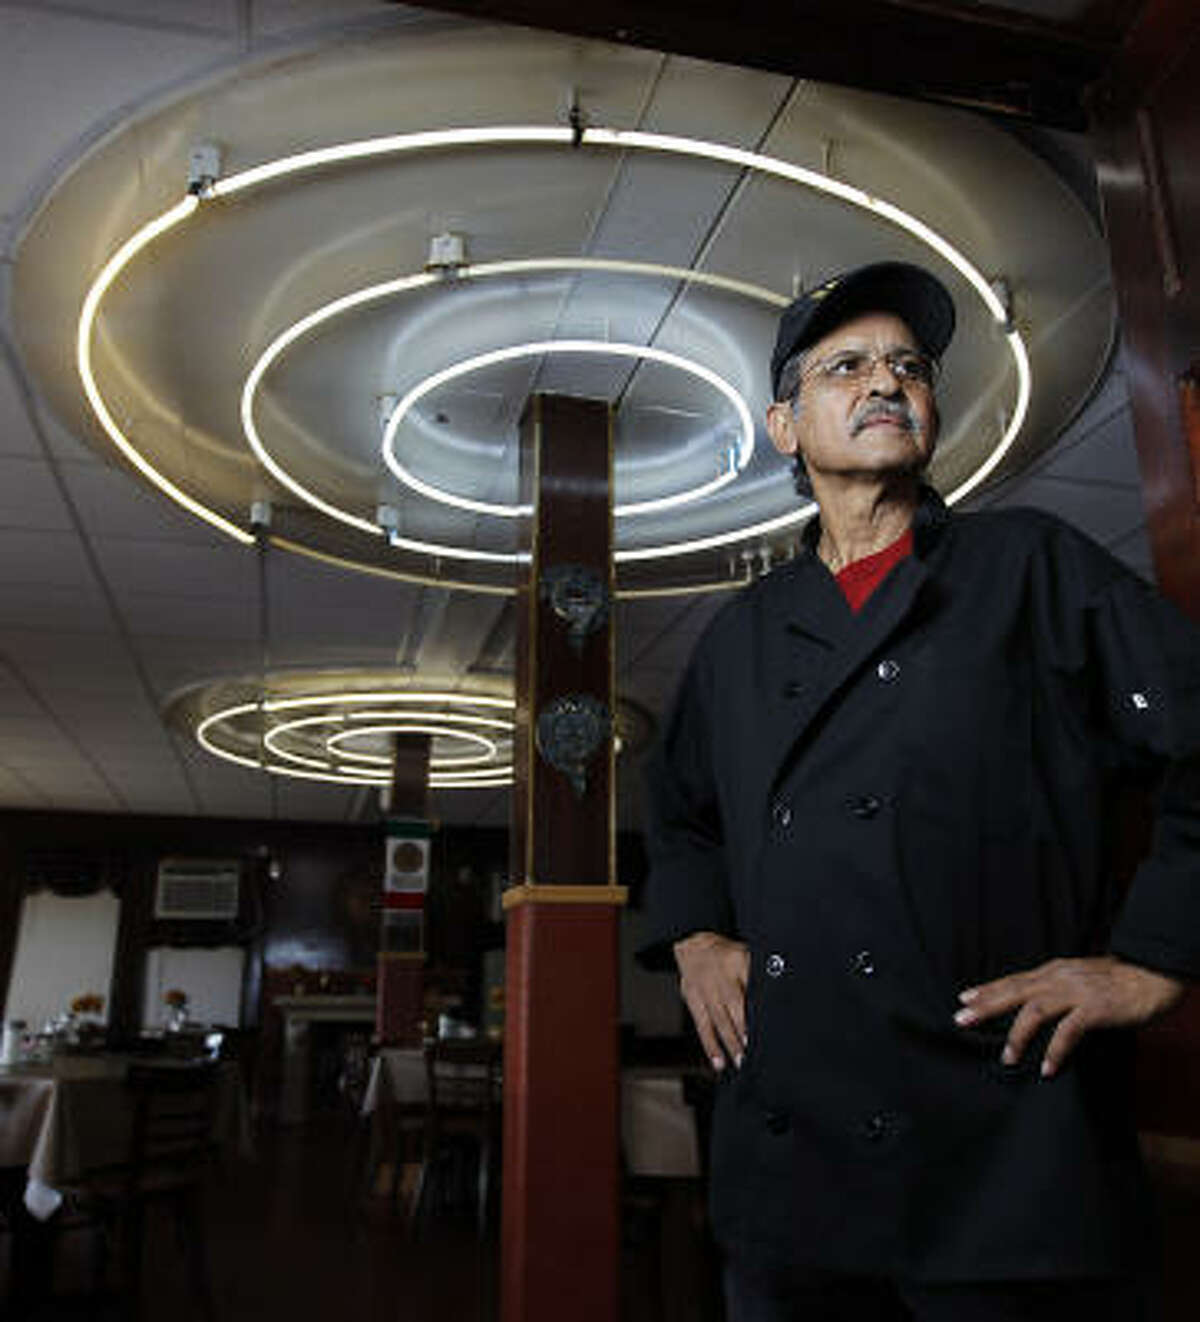 Pete Quintanilla, owner of the Taco House Restaurant , is owner of one of 140 businesses in Galveston on a list for a disaster assistance loan that is just getting under way 30 months after Hurricane Ike. Quintanilla is barely keeping the restaurant afloat.